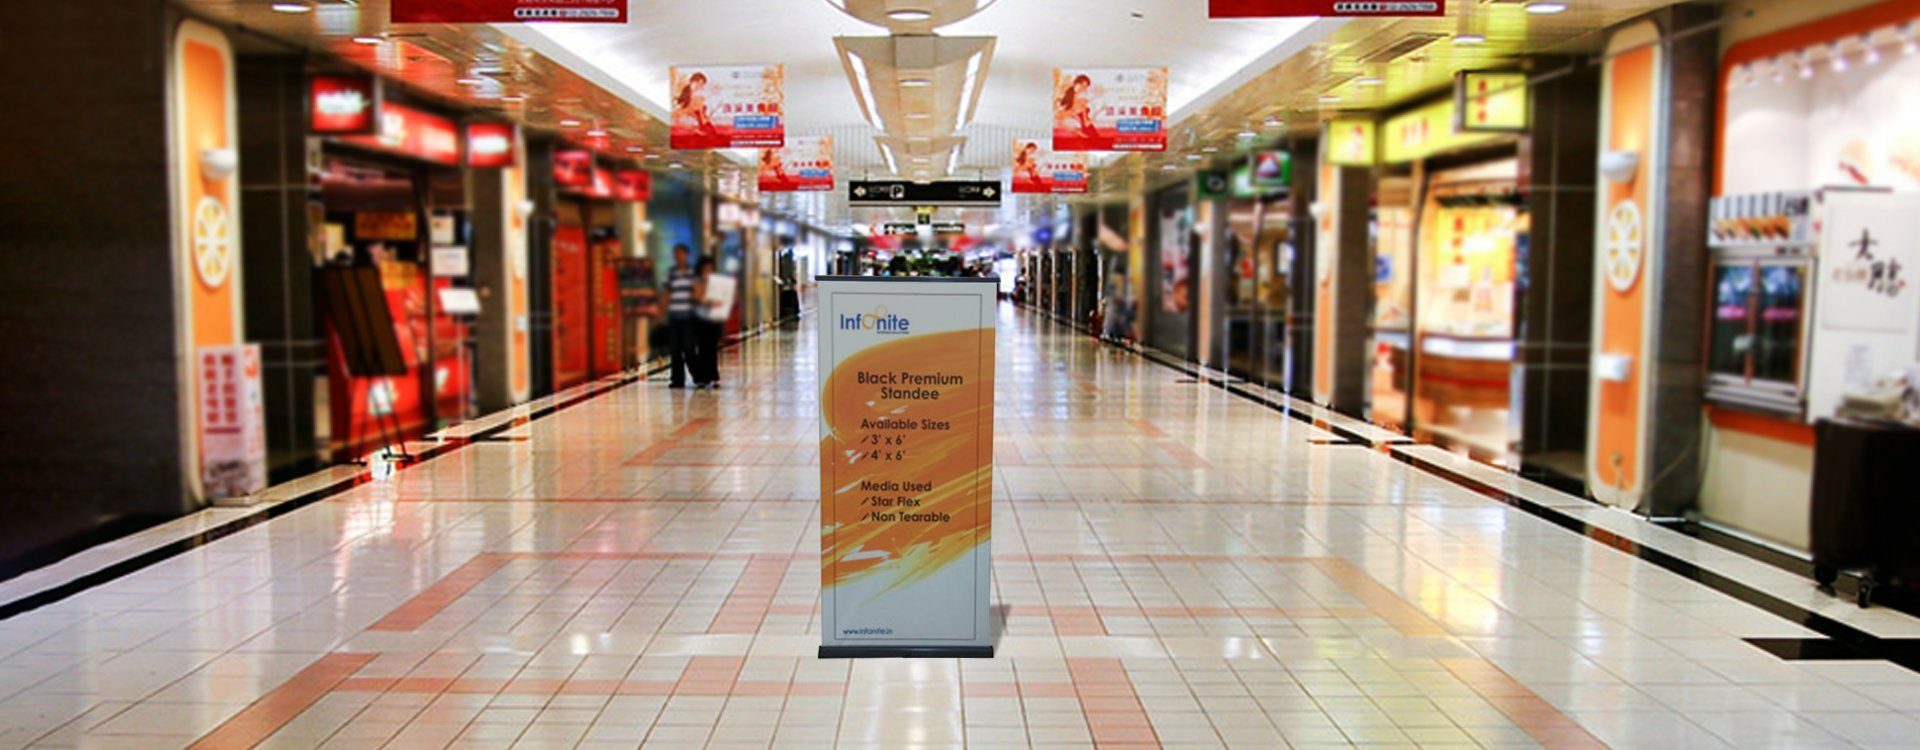 Digital Signage and Software Solutions in India